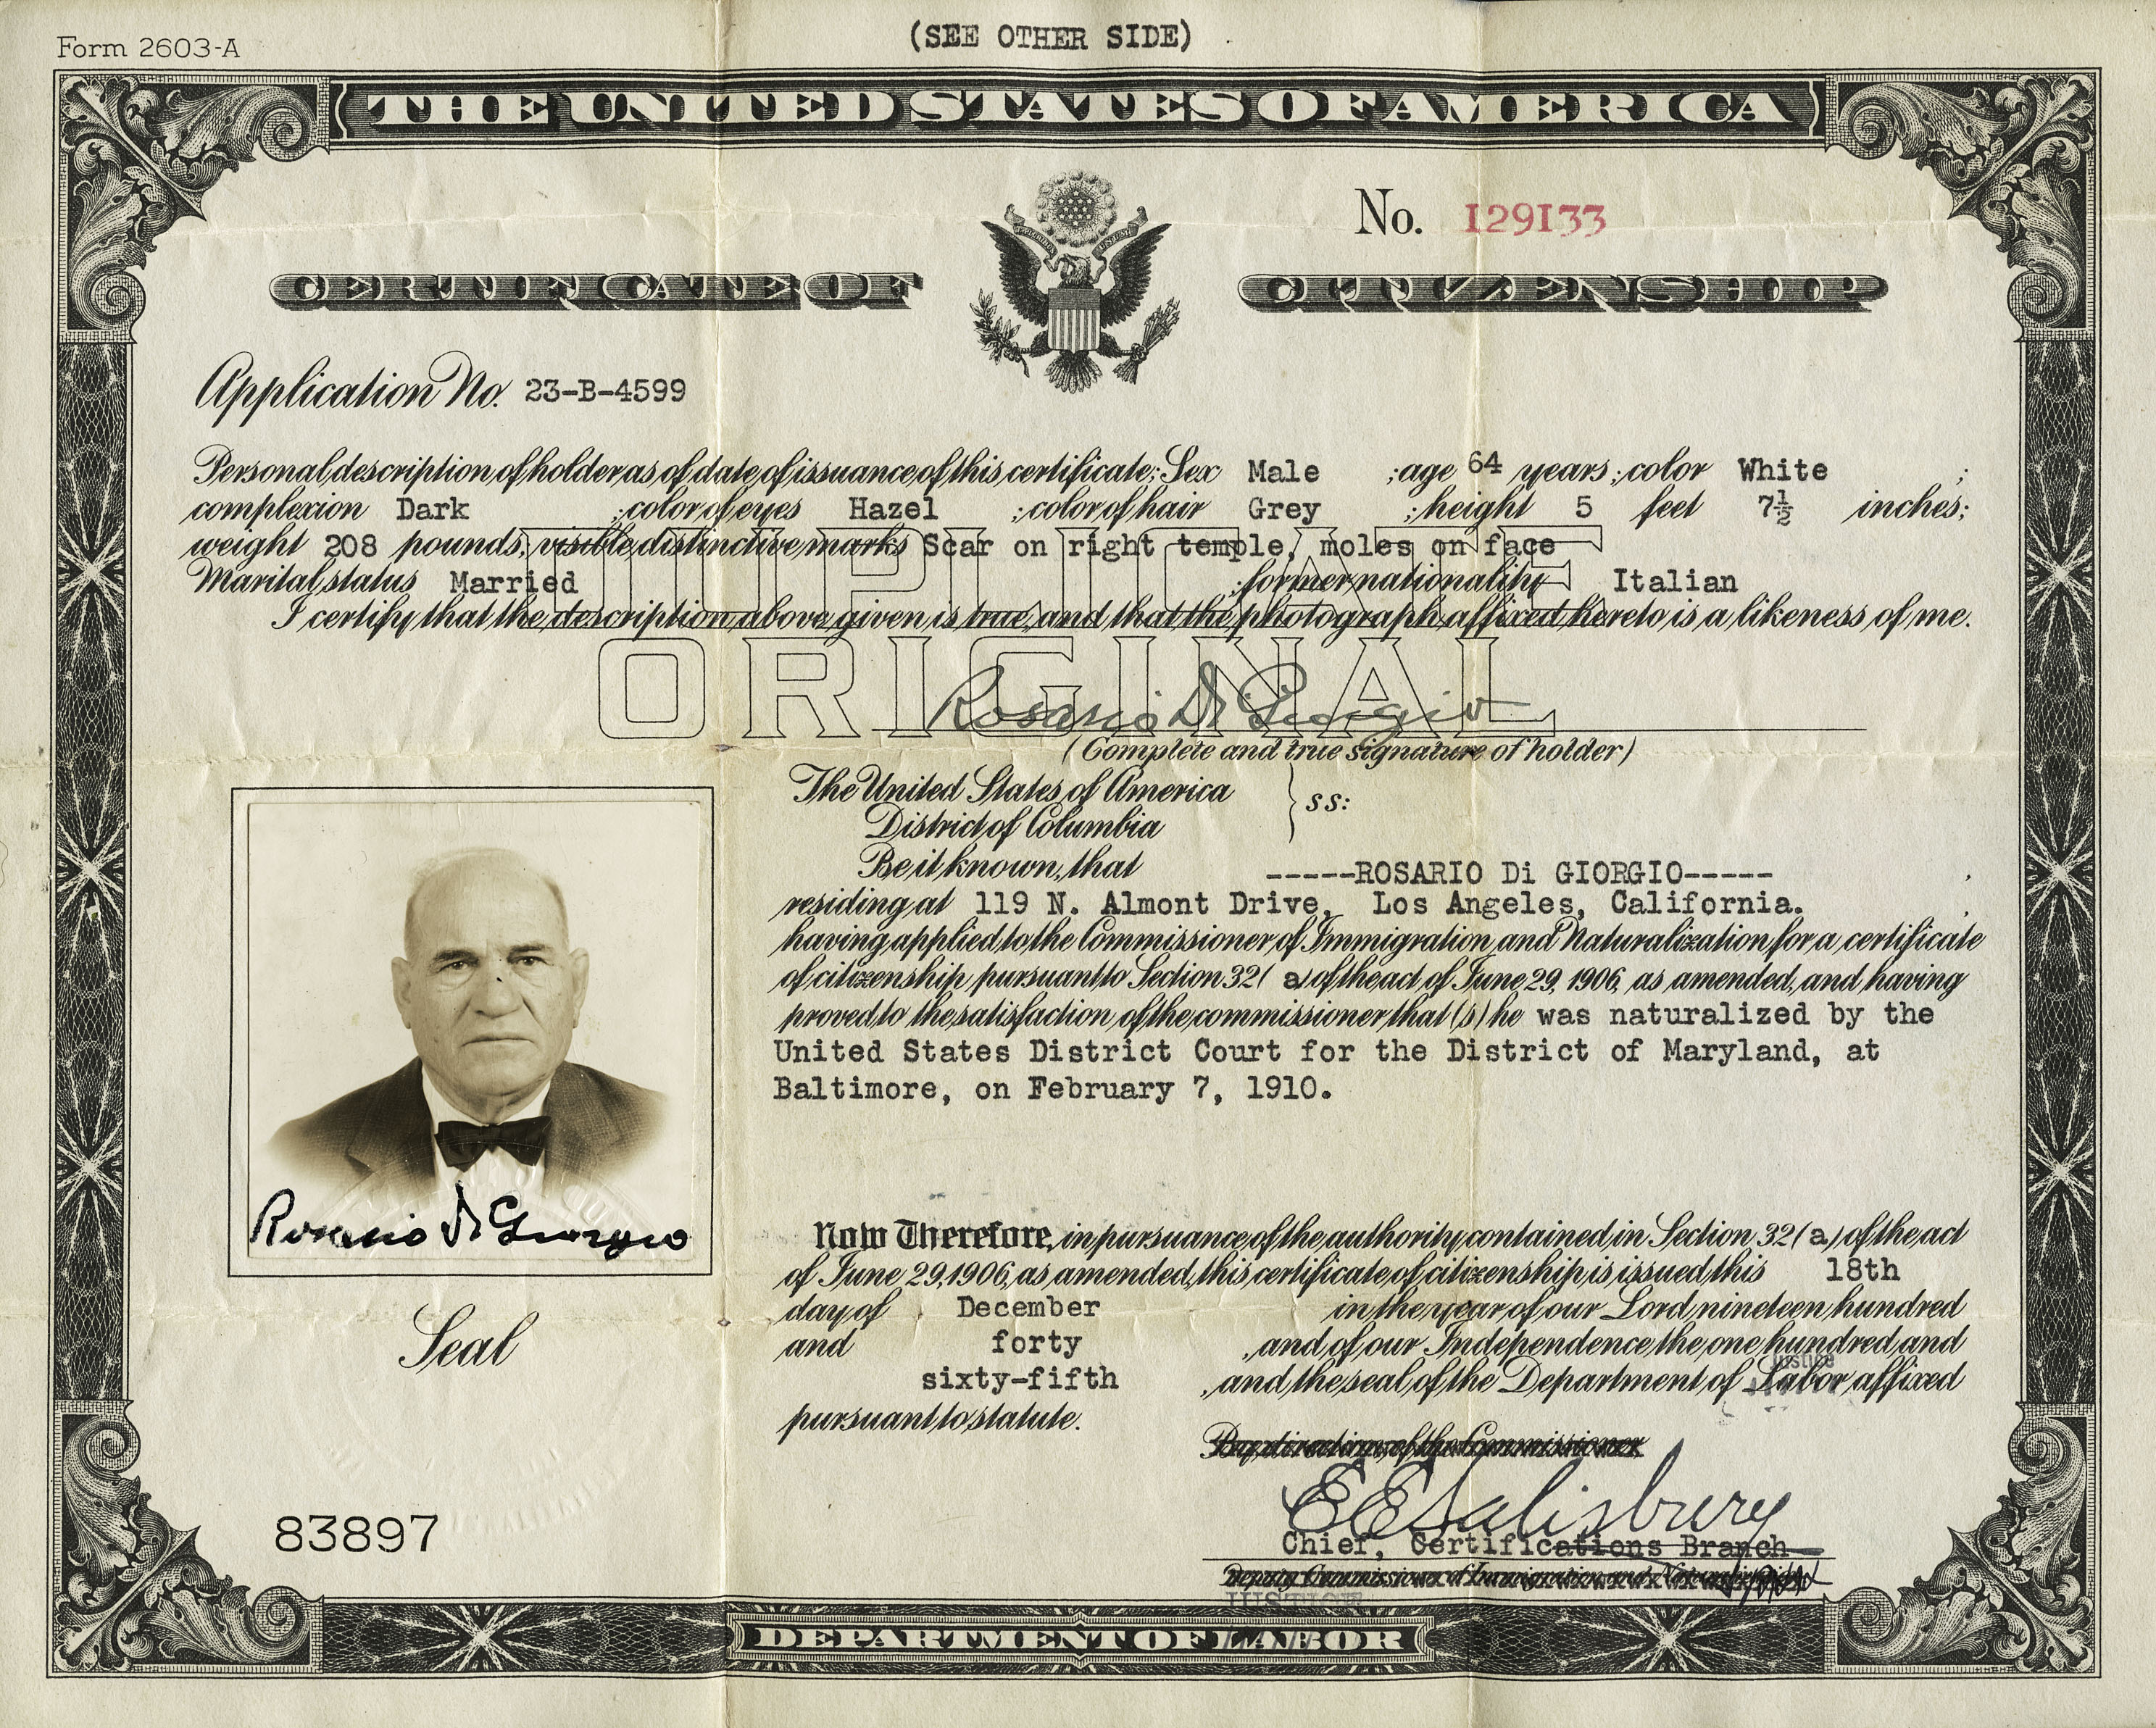 Rosario di giorgios certificate of us citizenship etg design family member links xflitez Images